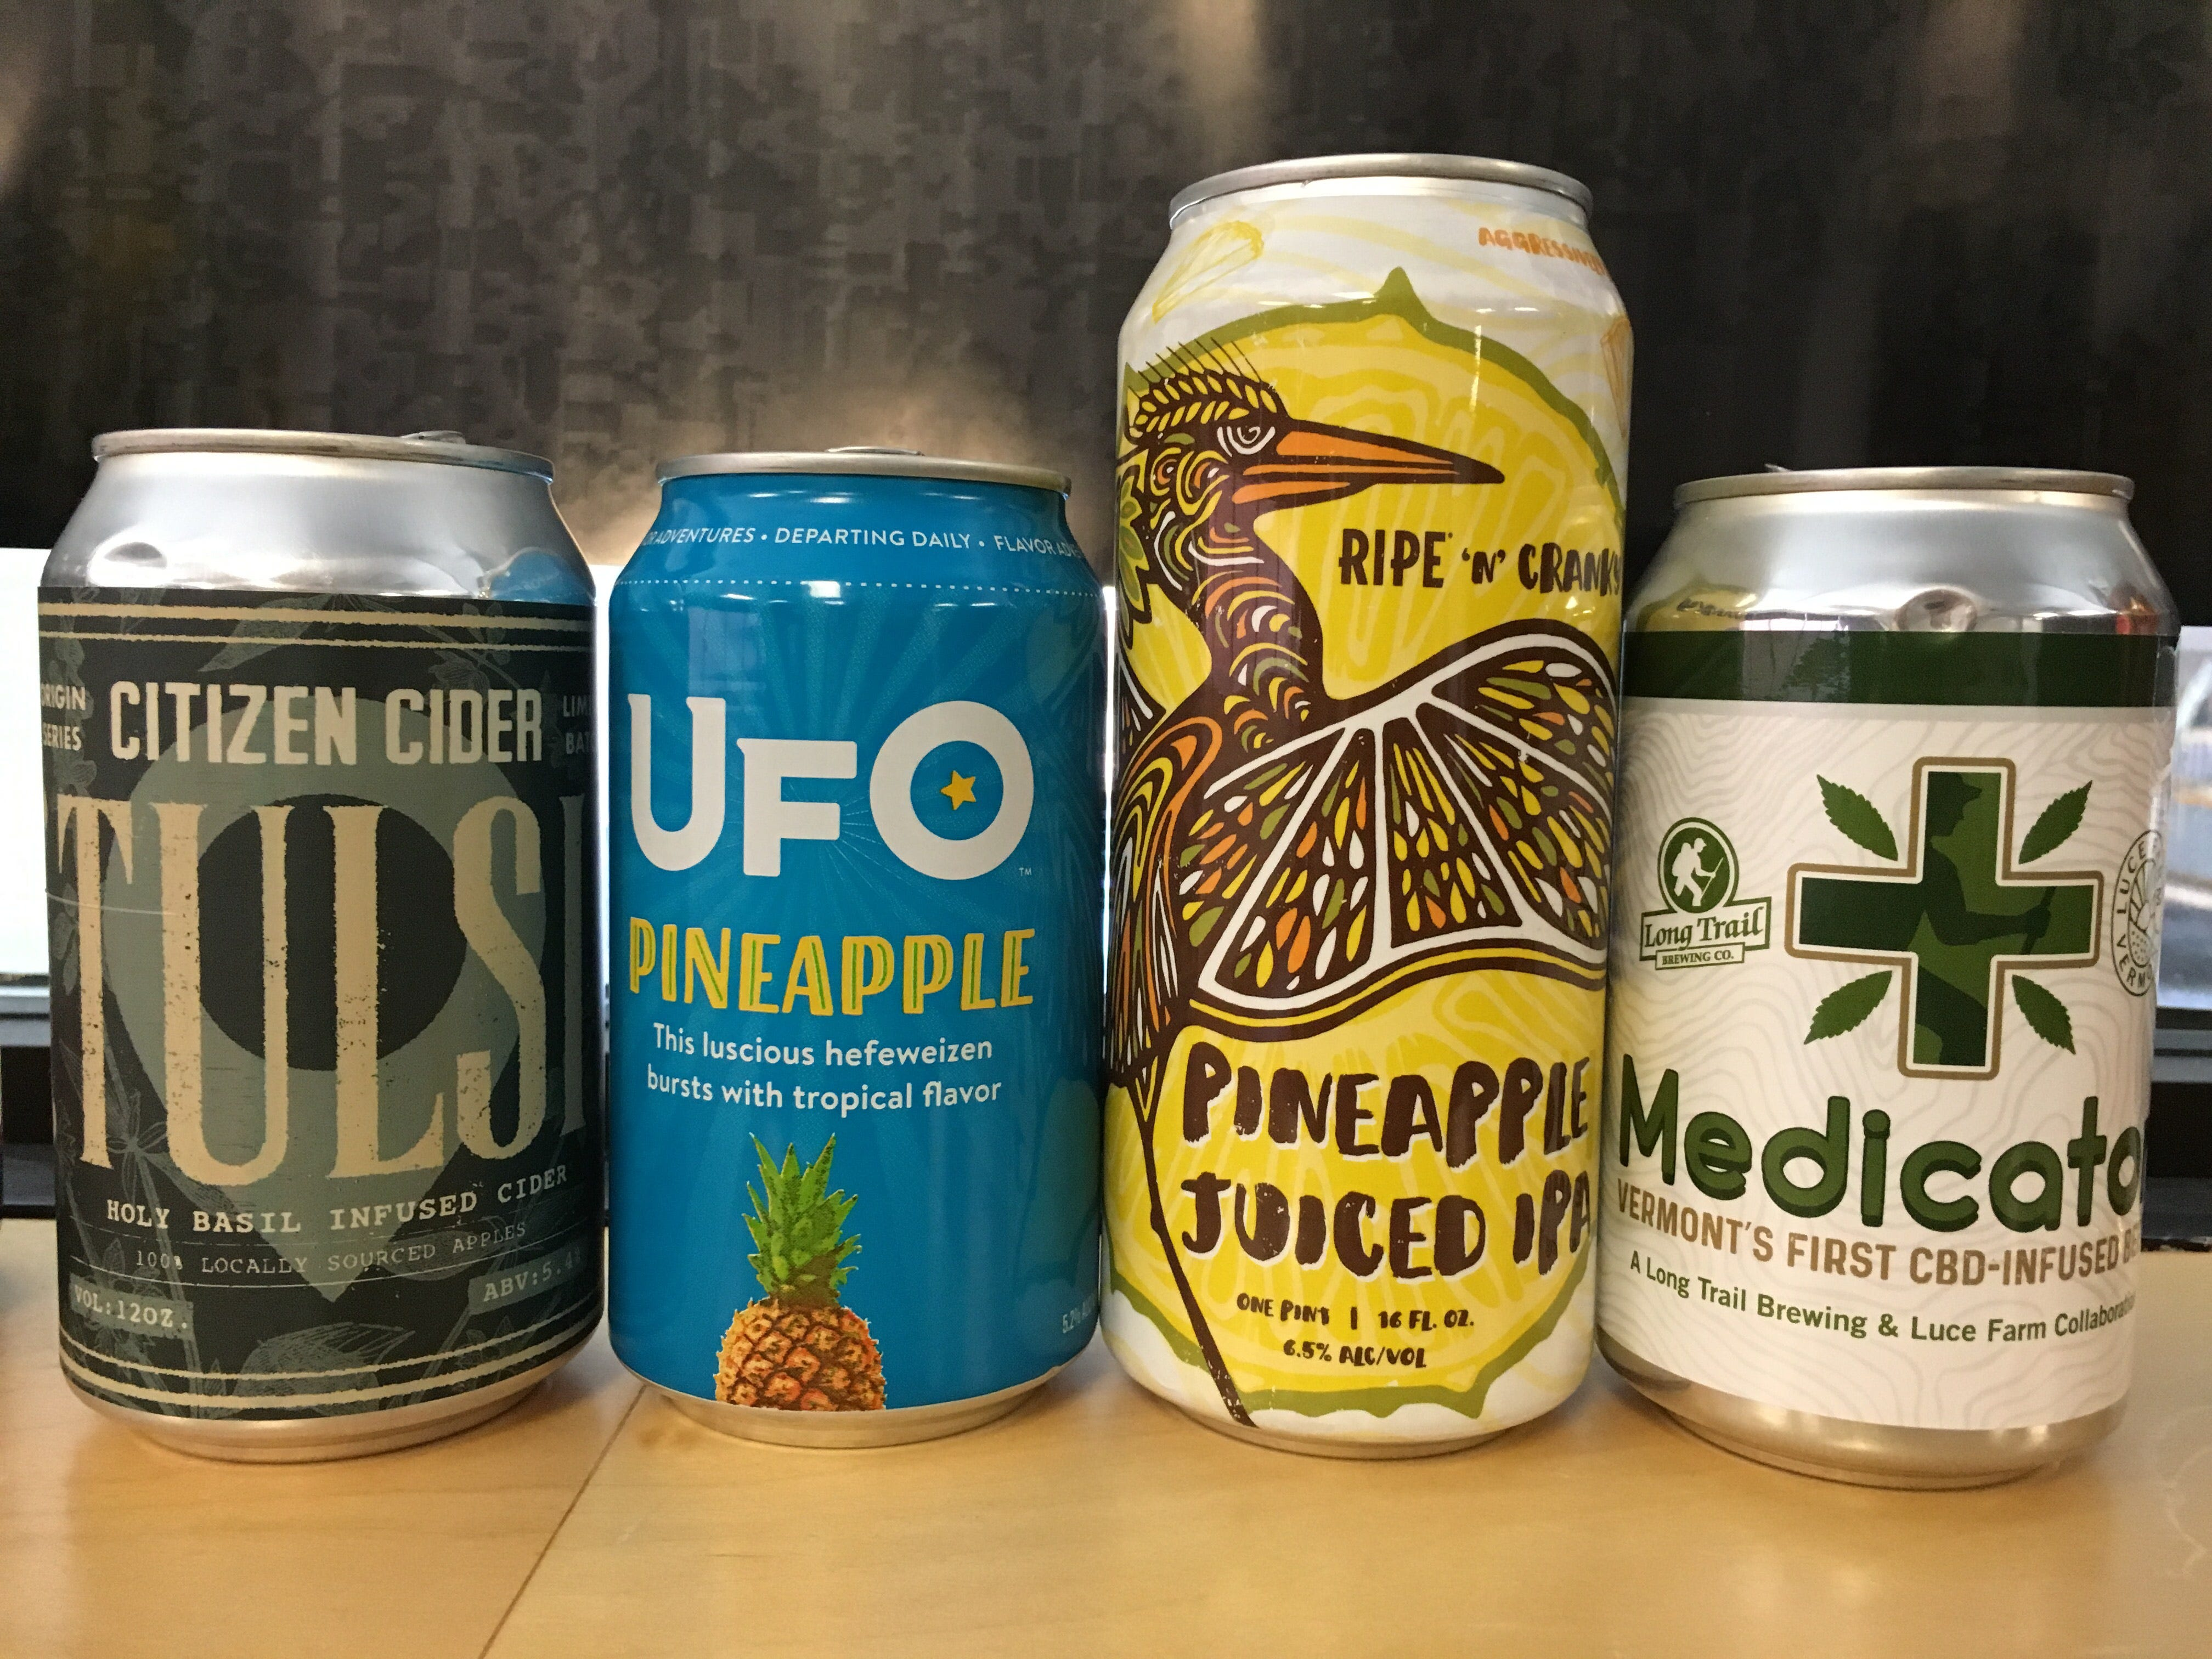 CBD-infused beer barred again; Long Trail not expecting federal approval anytime soon